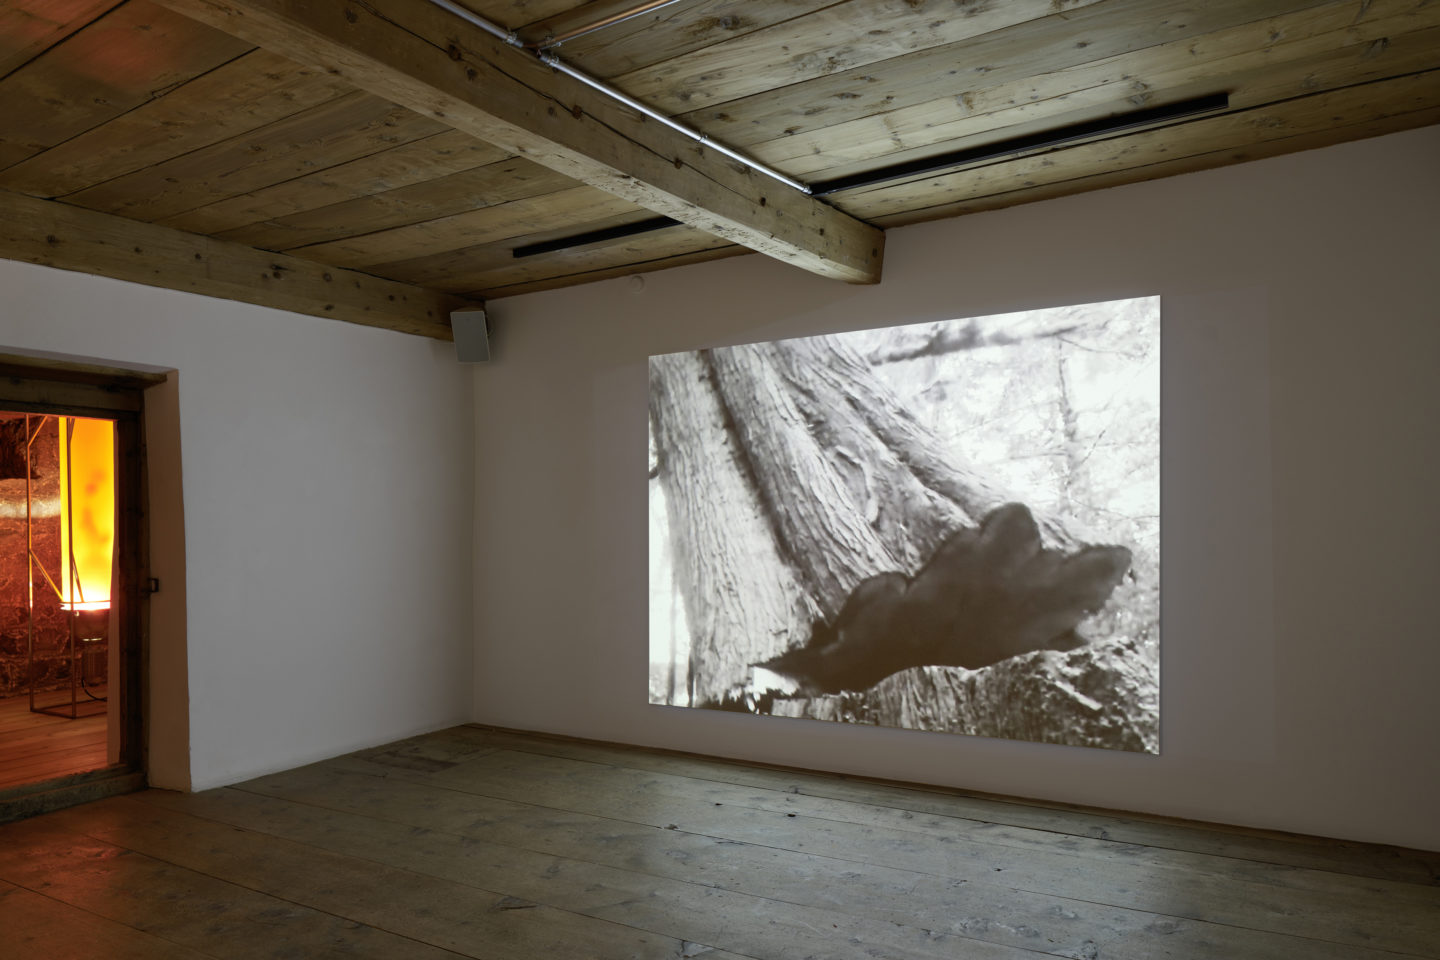 Installation View Julian Charrière Soloshow «Ever Since We Crawled Out, 2018» at Galerie Tschudi, Zuoz / Photo: Ralph Feiner / Courtesy: the artist and Galerie Tschudi, Zuoz